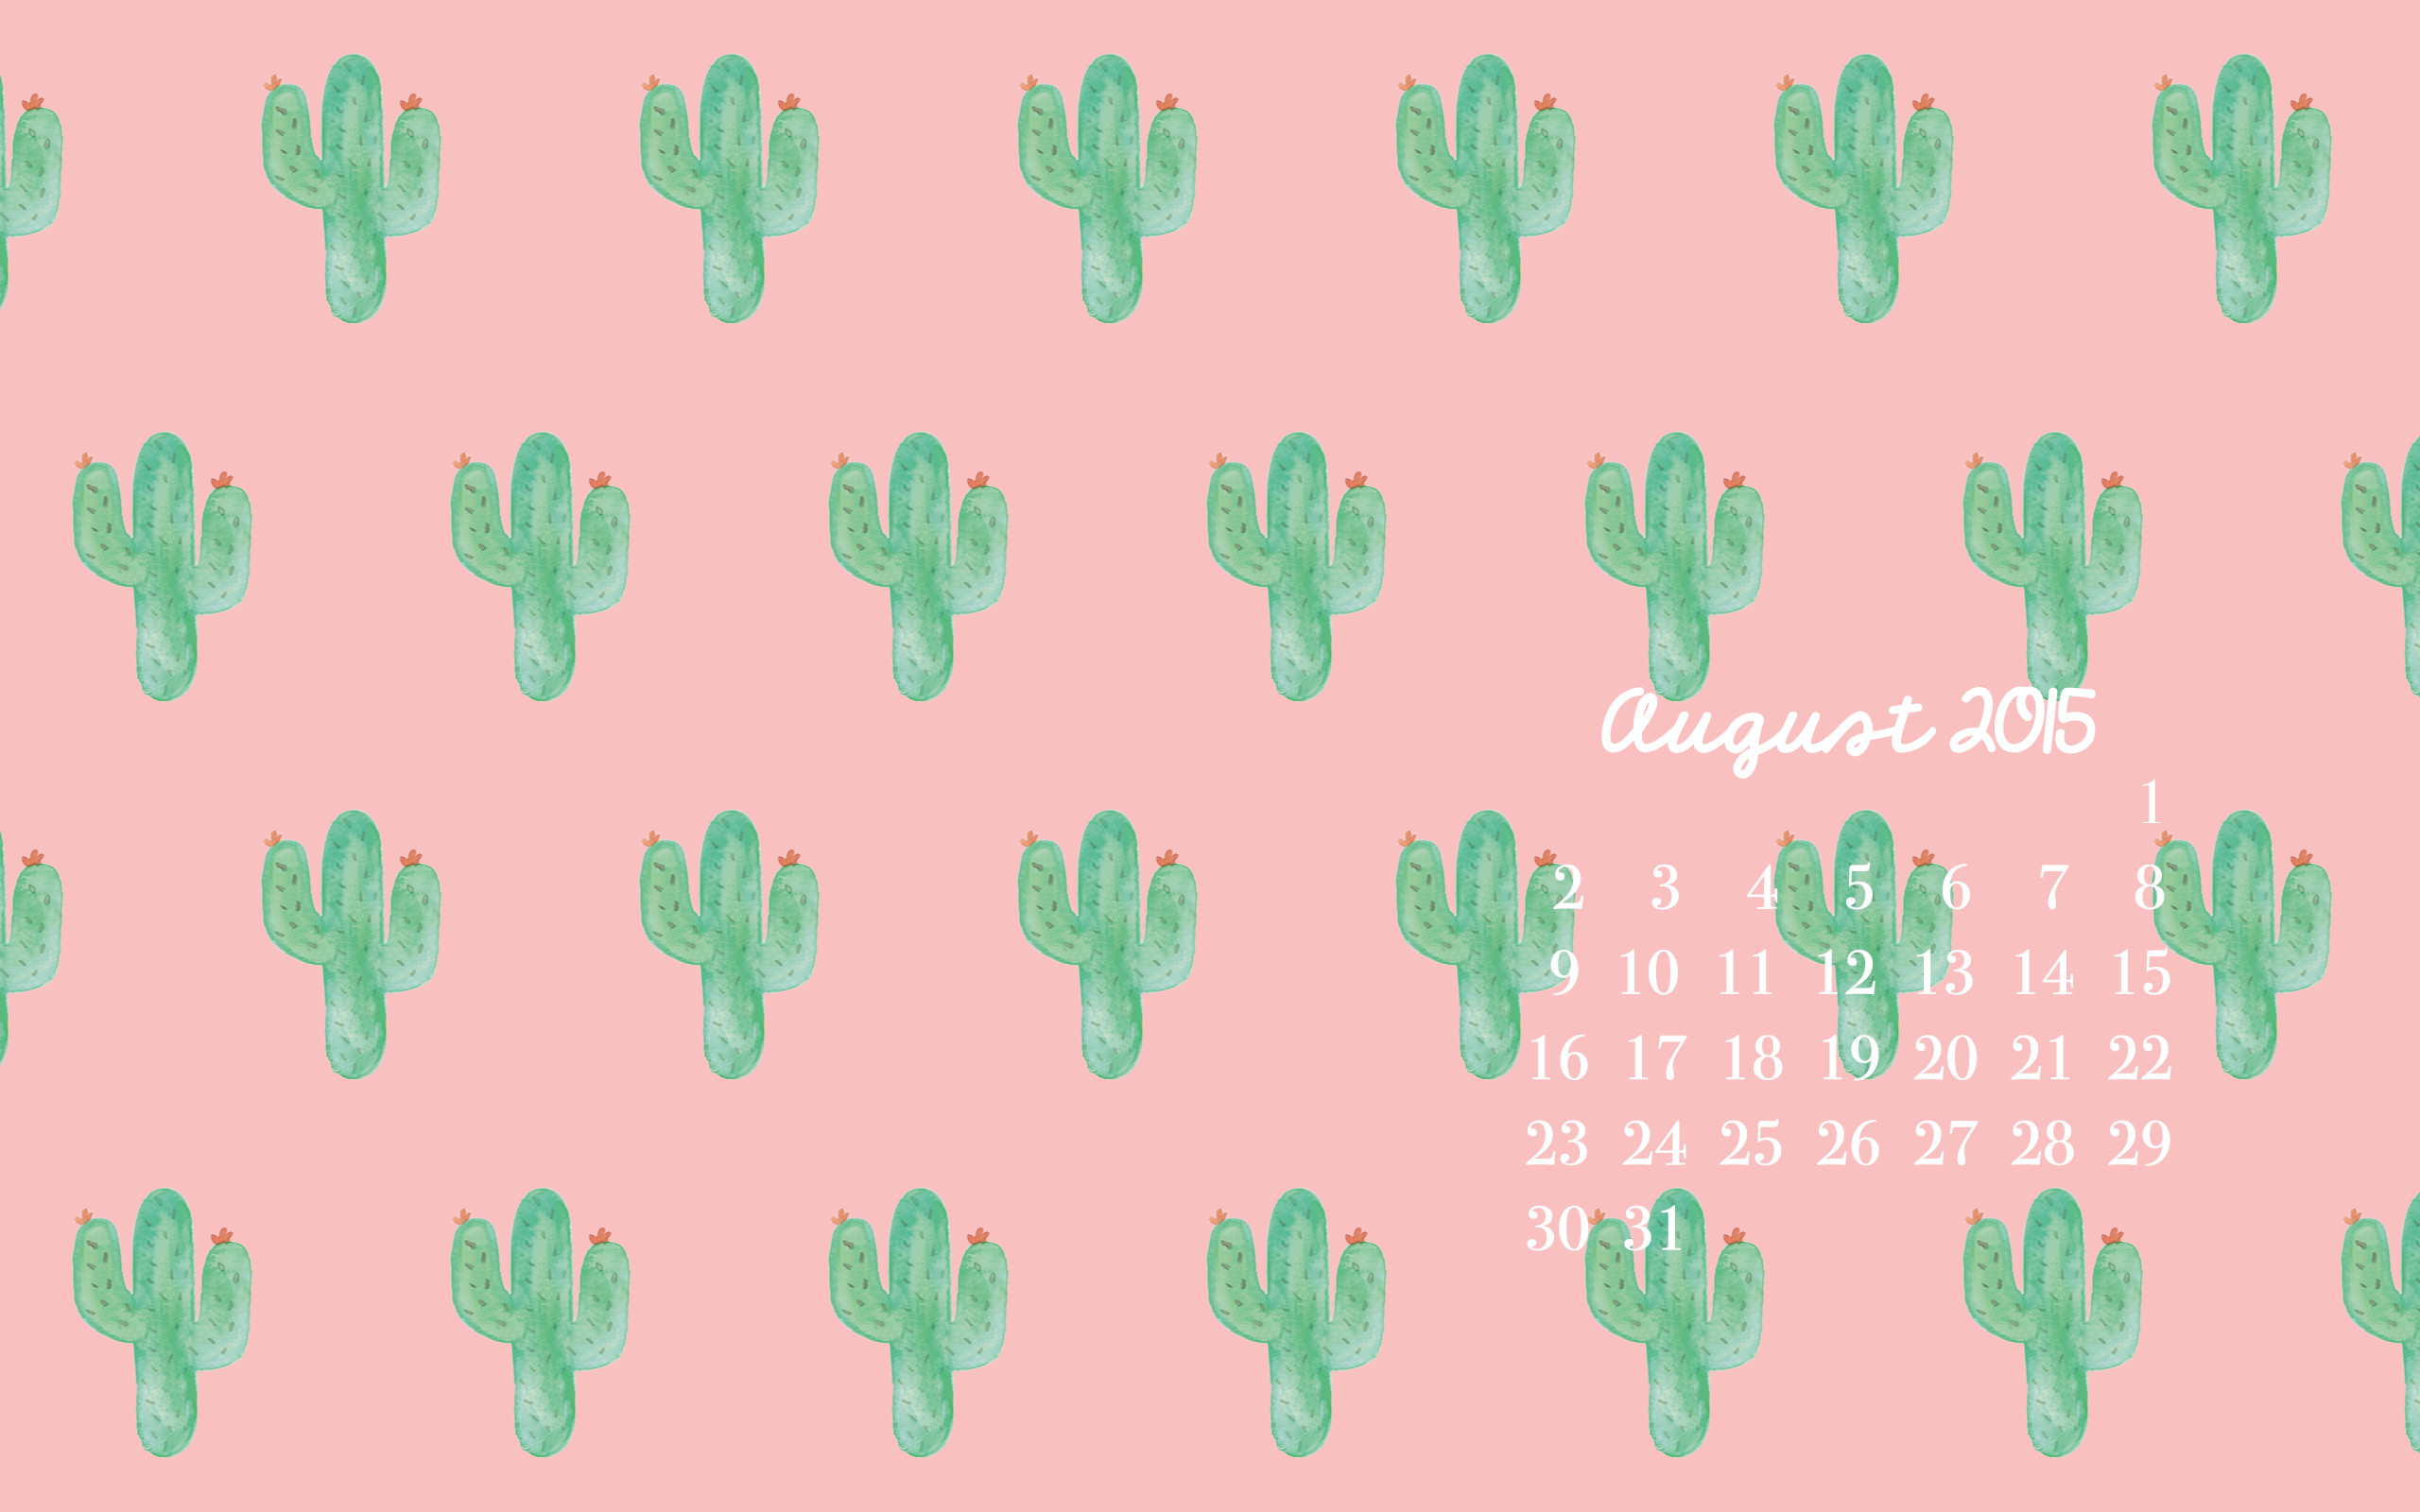 2560x1600 Free August 2015 Desktop Wallpaper by All Things Pretty  www.allthingsprettyblog.com